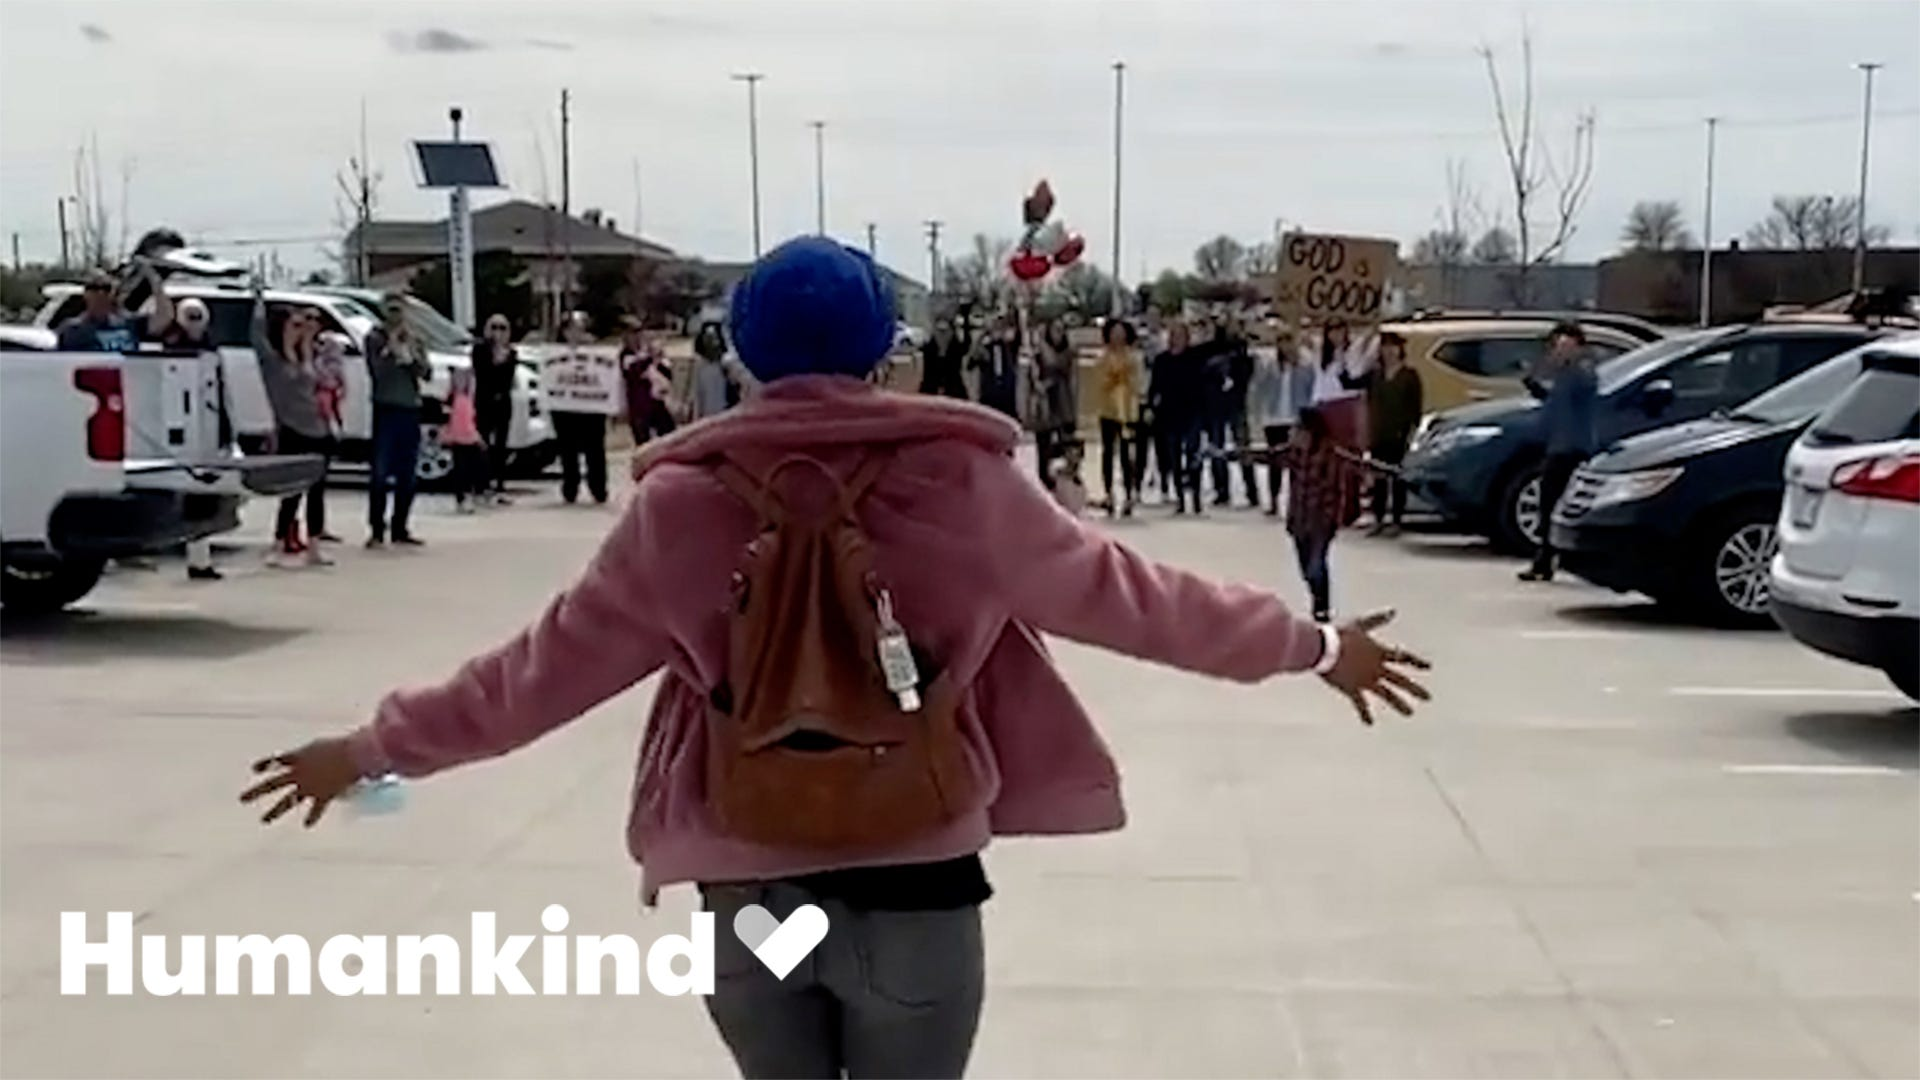 Cancer survivor surprised with parking lot party